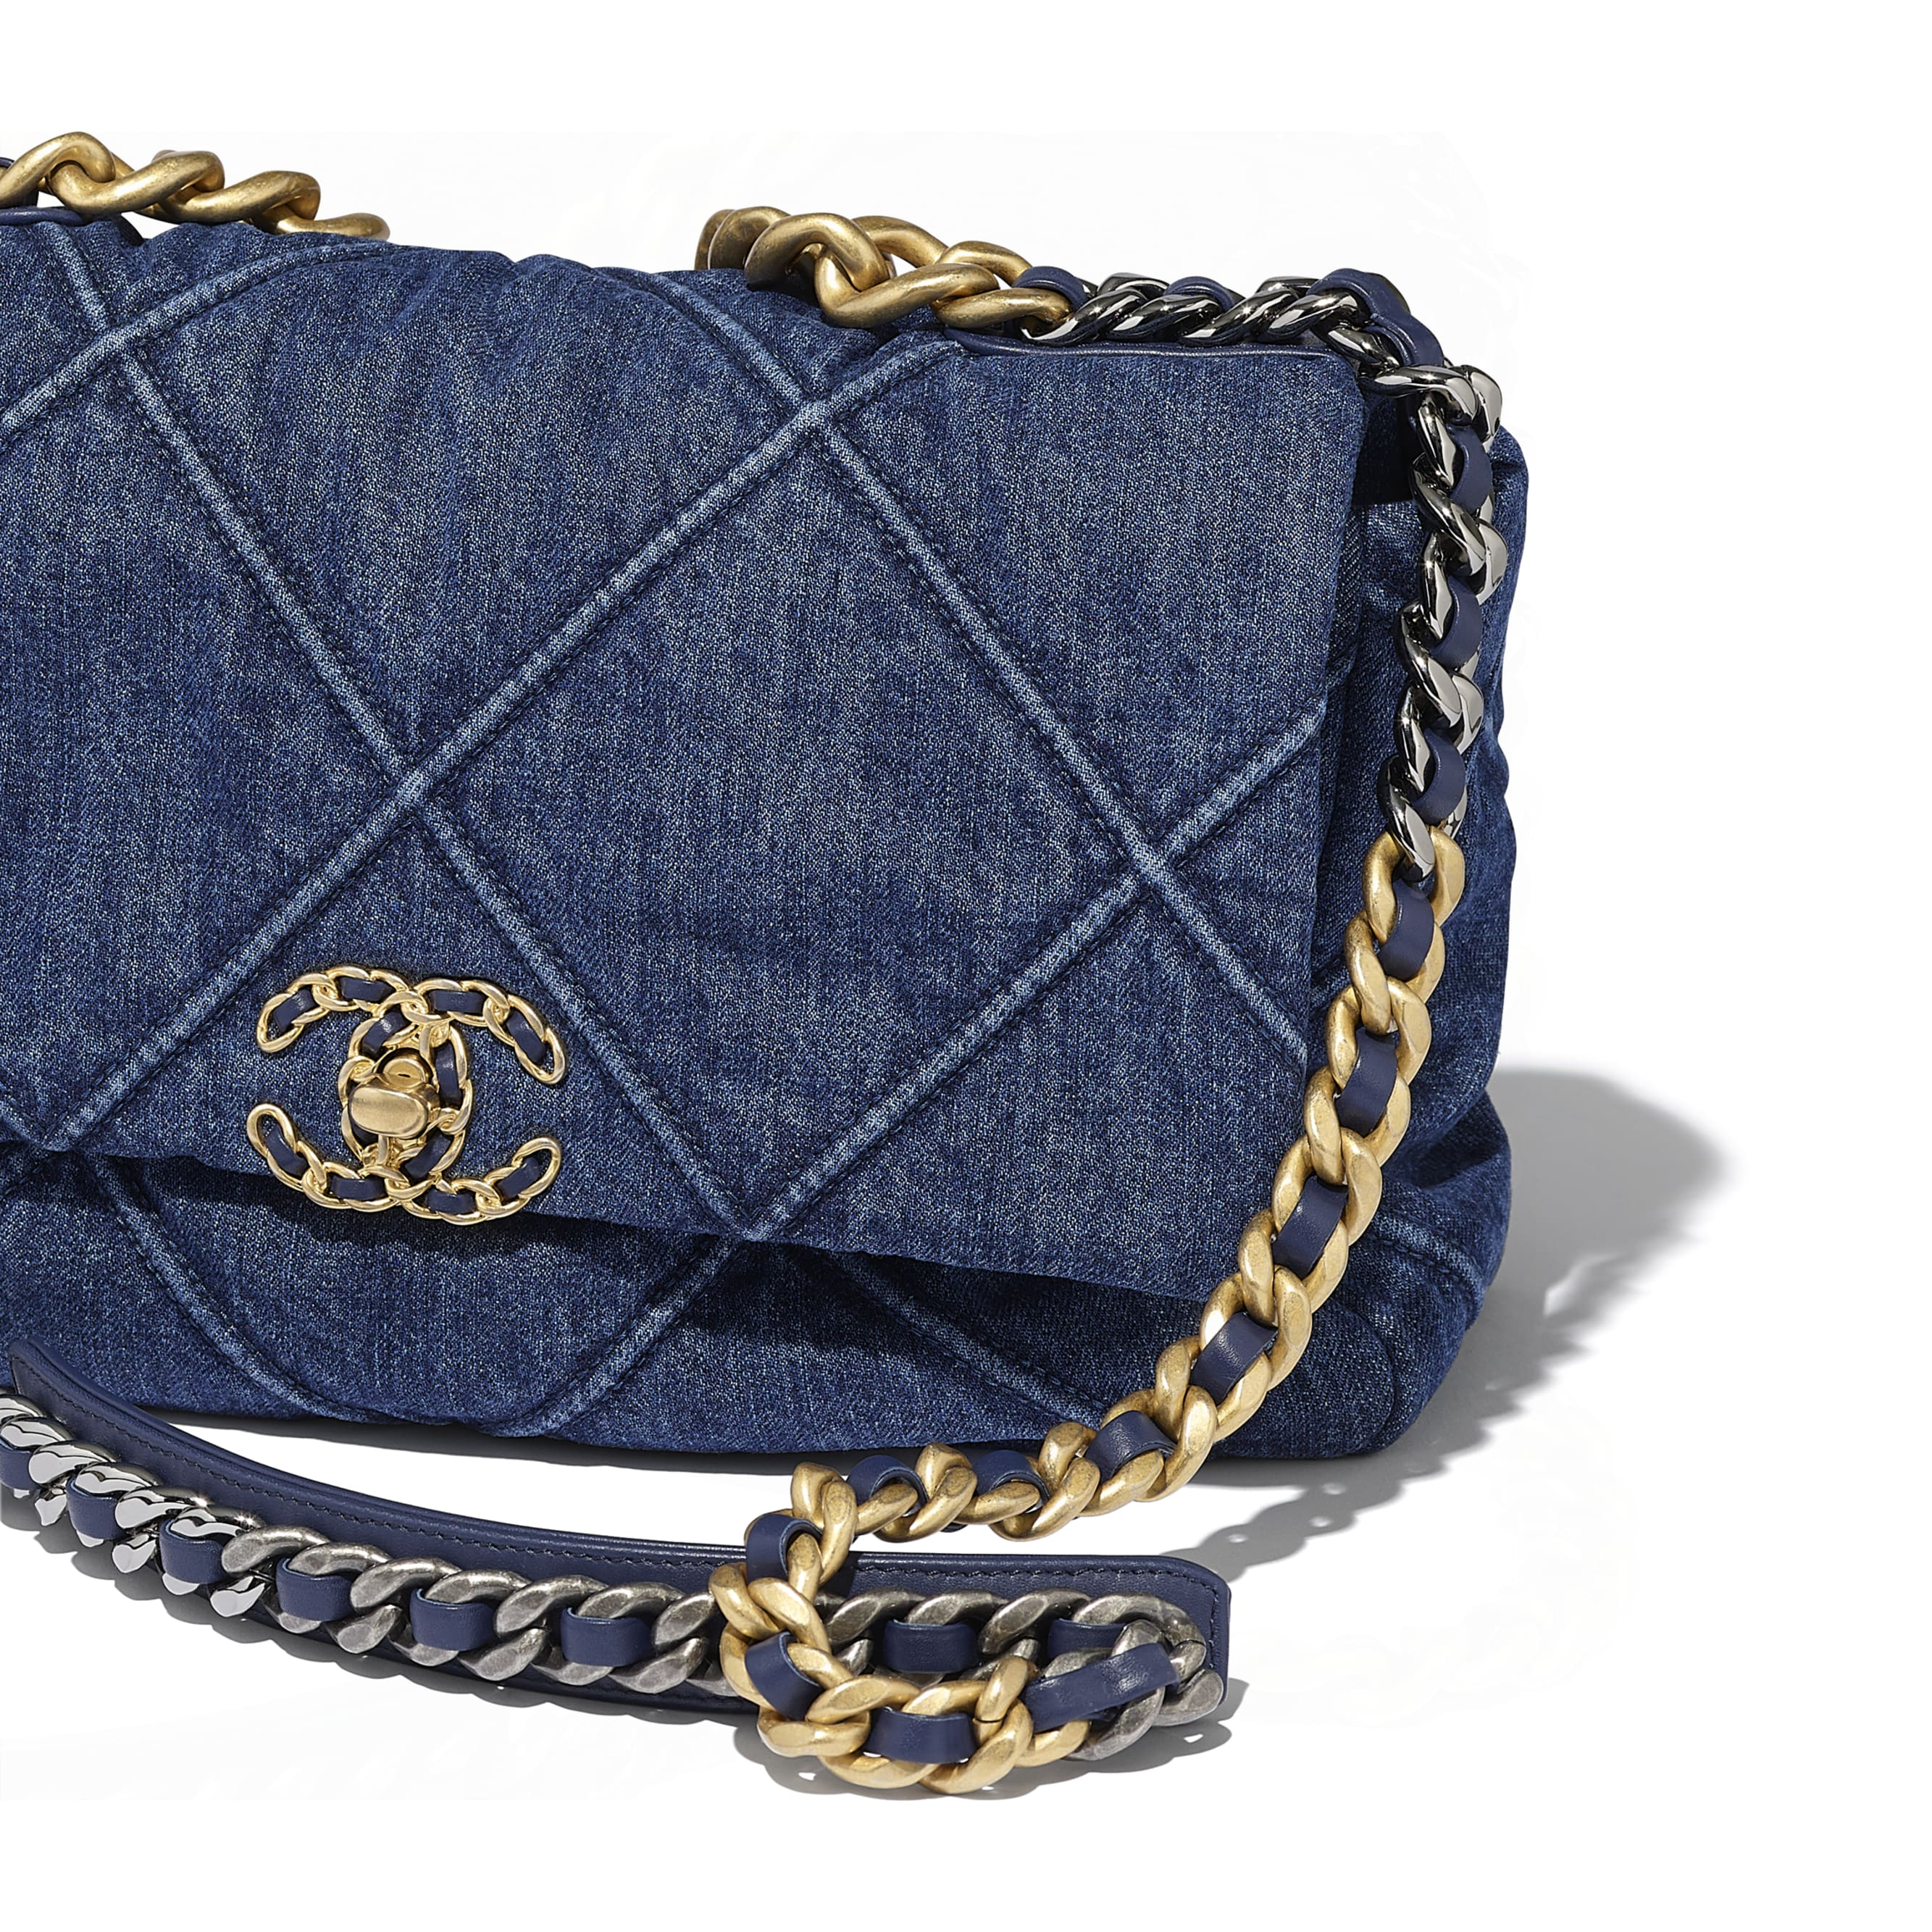 CHANEL 19 Large Flap Bag - Blue - Denim, Gold-Tone, Silver-Tone & Ruthenium-Finish Metal - CHANEL - Extra view - see standard sized version